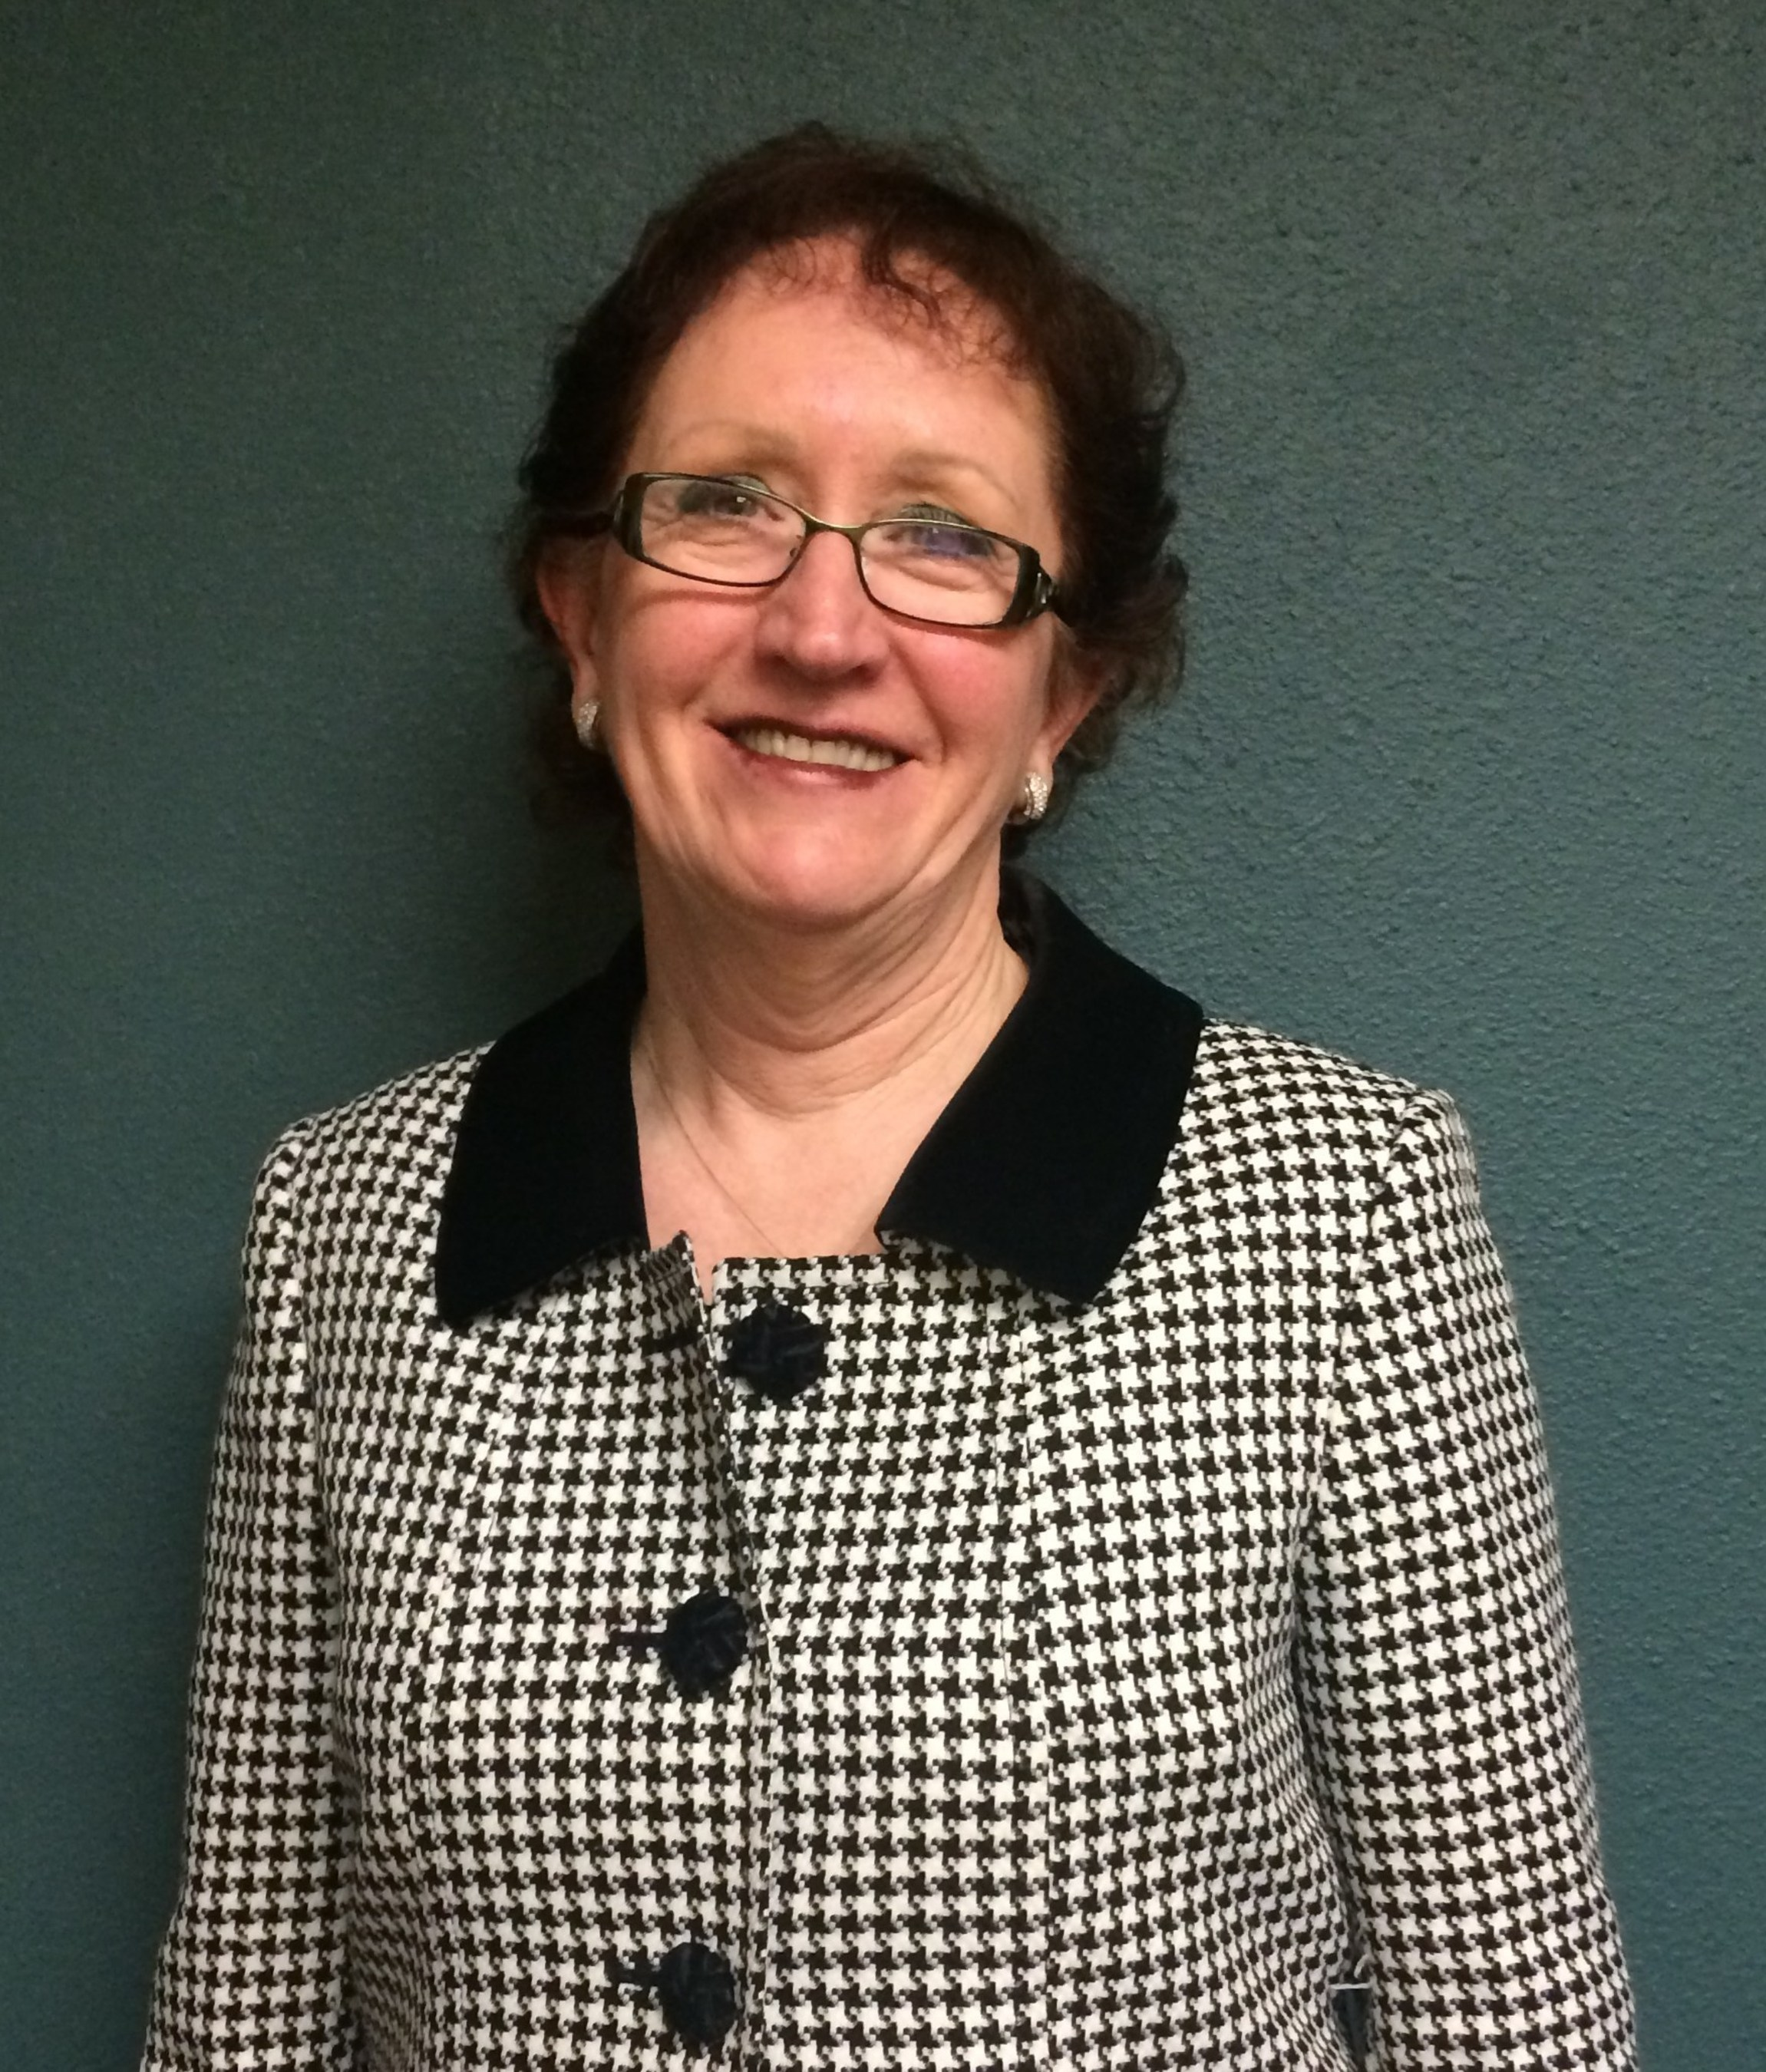 With the success of the special election, Clackamas County Clerk Sherry Hall is confident about kicking off the 2016 presidential election season with Verity Voting.